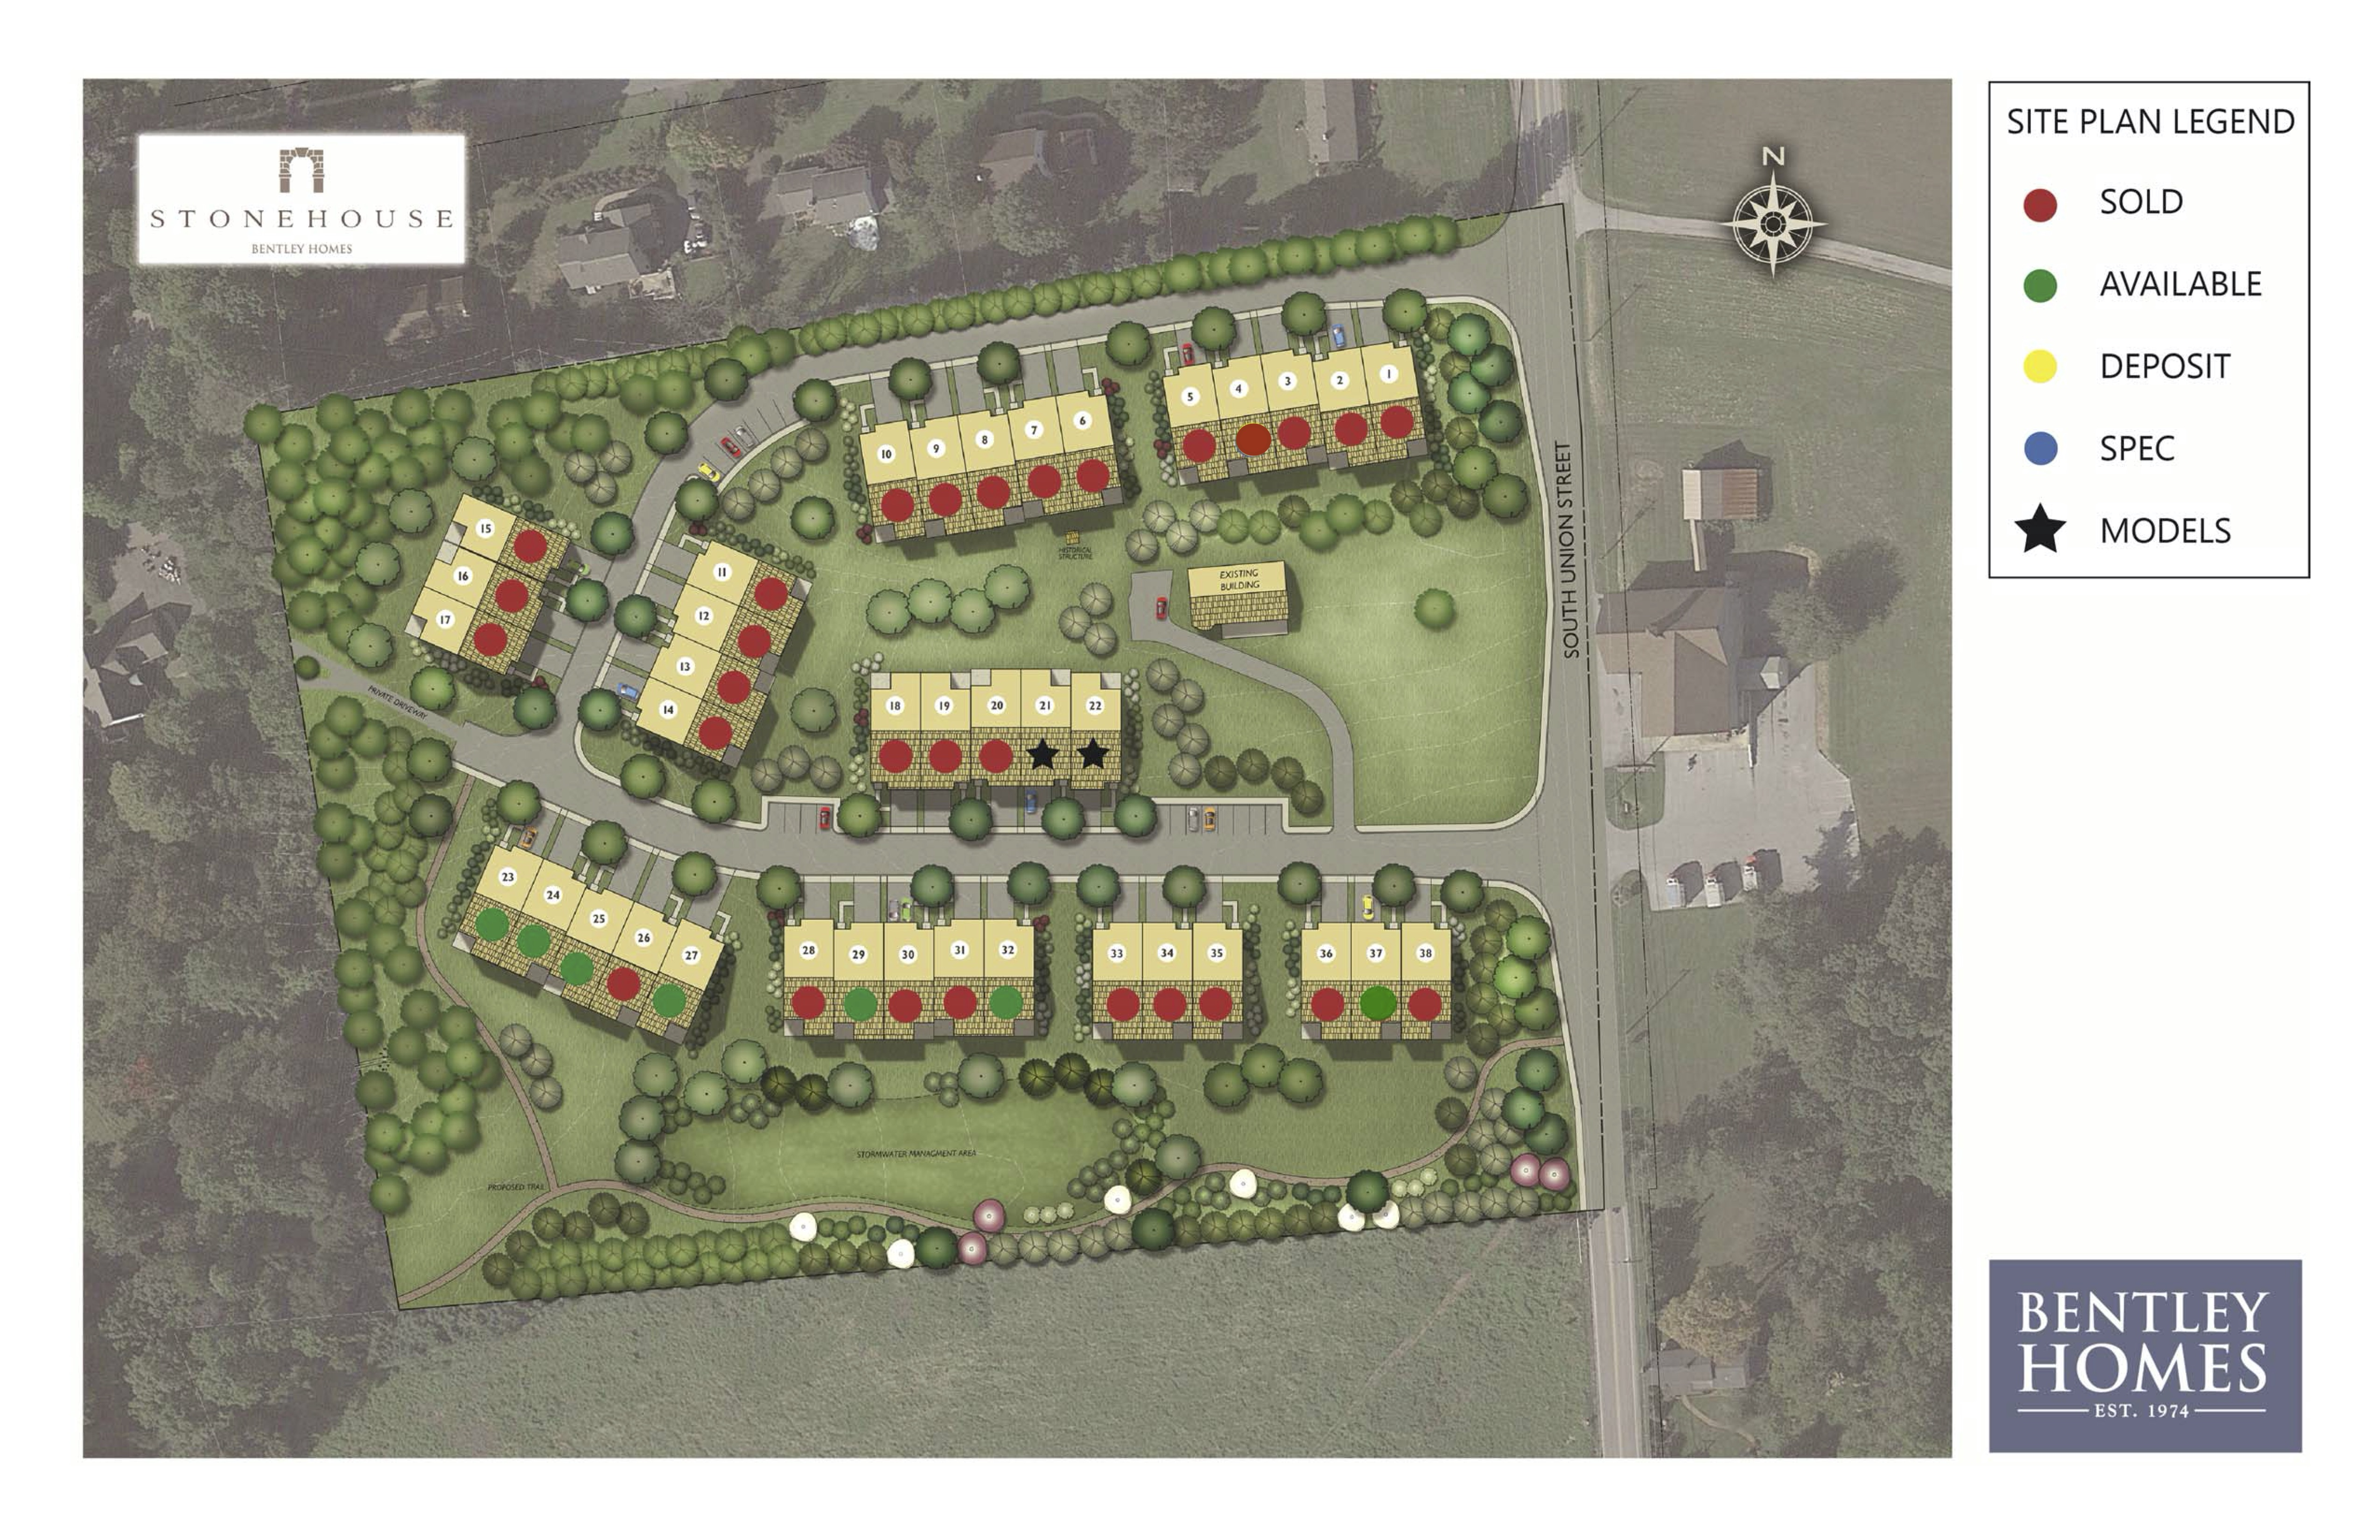 Stonehouse site plan with legend of sold and available homes.